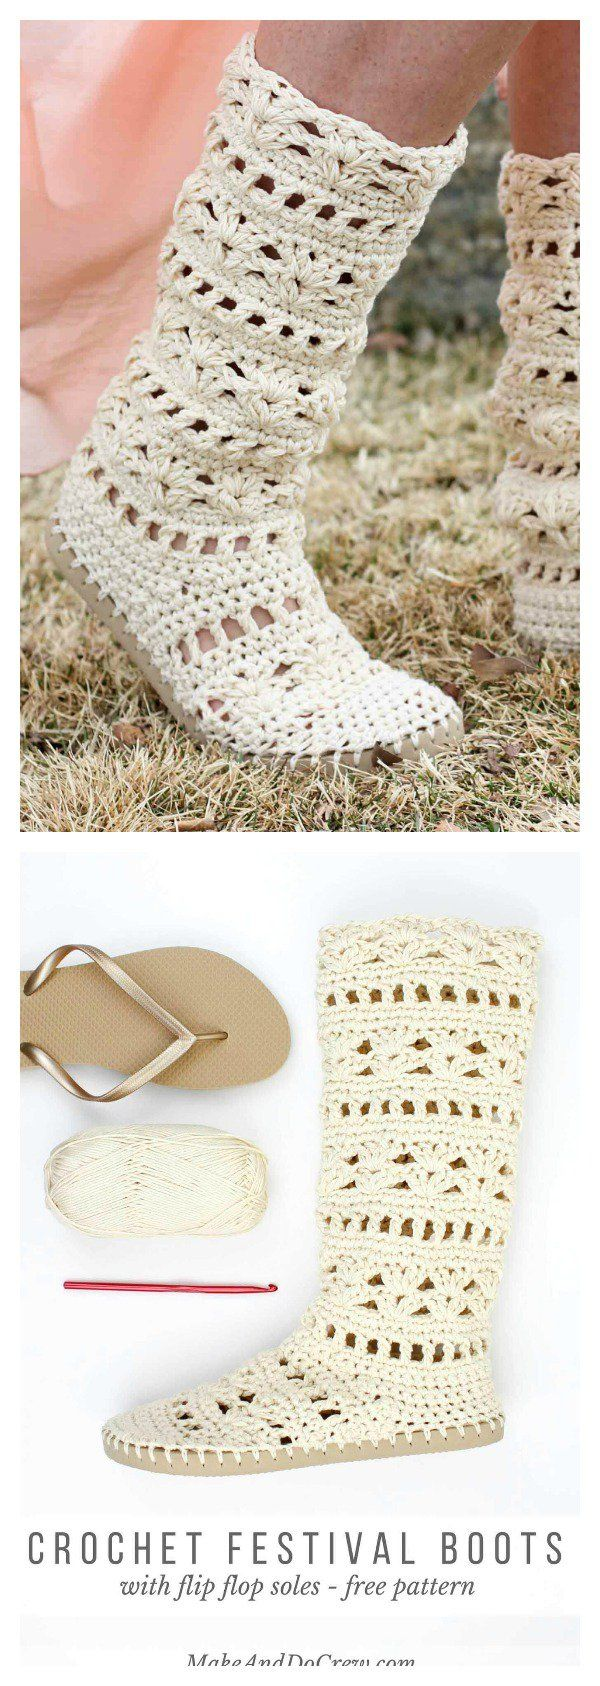 25 best Capuchas images on Pinterest | Crochet handbags, Knitted ...